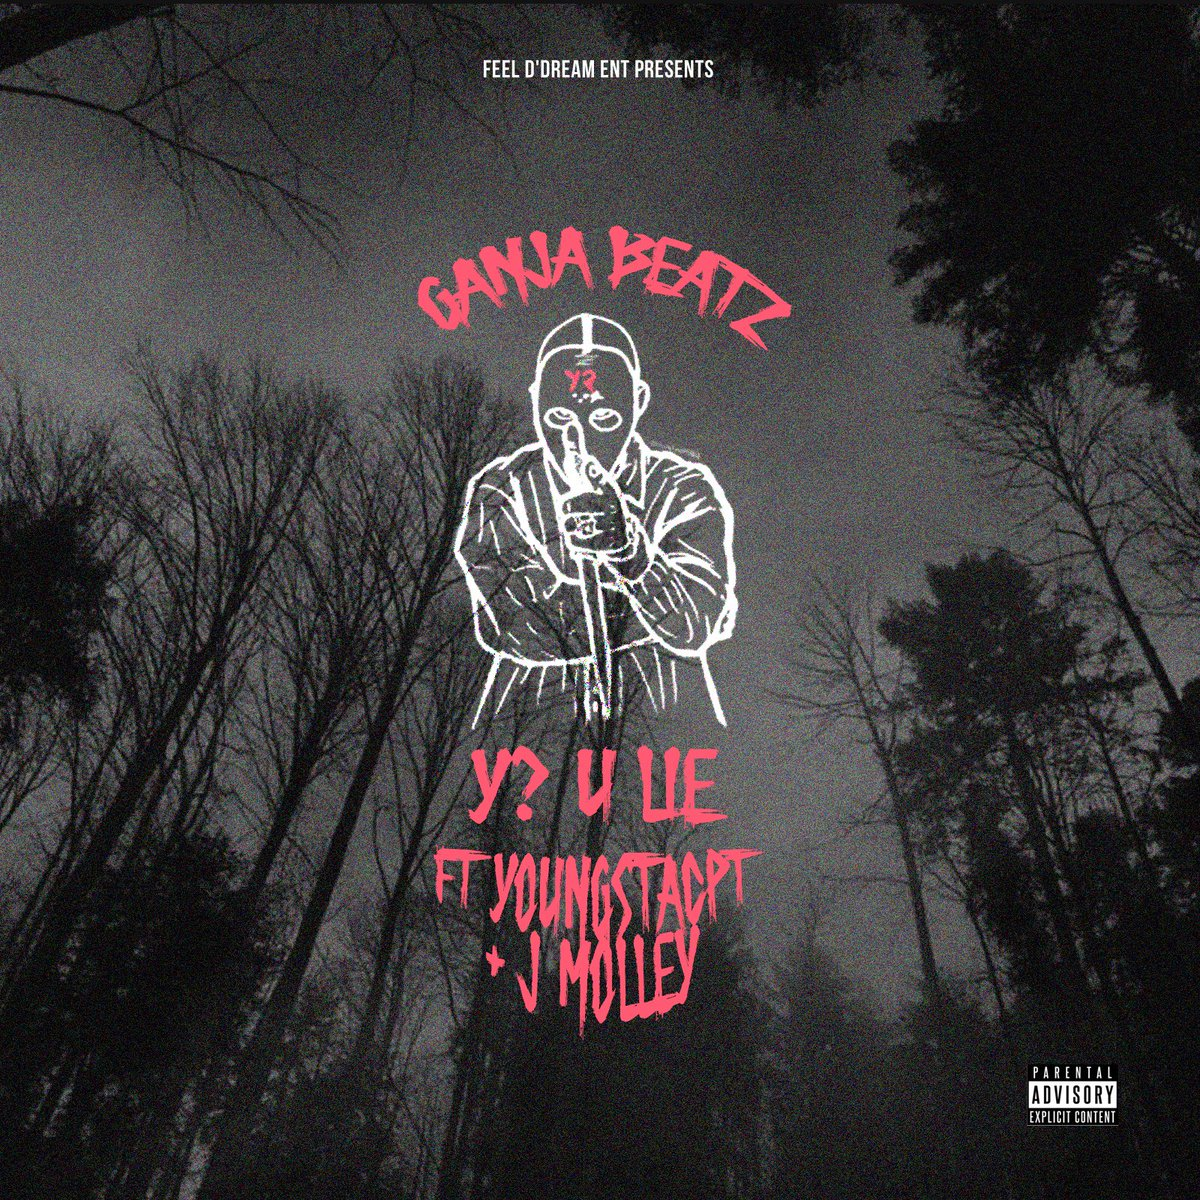 ganja beatz Ganja Beatz Drop New 'Y? U LIE' Joint Ft. J Molley & YoungstaCPT DWJav5cVwAAbjvK